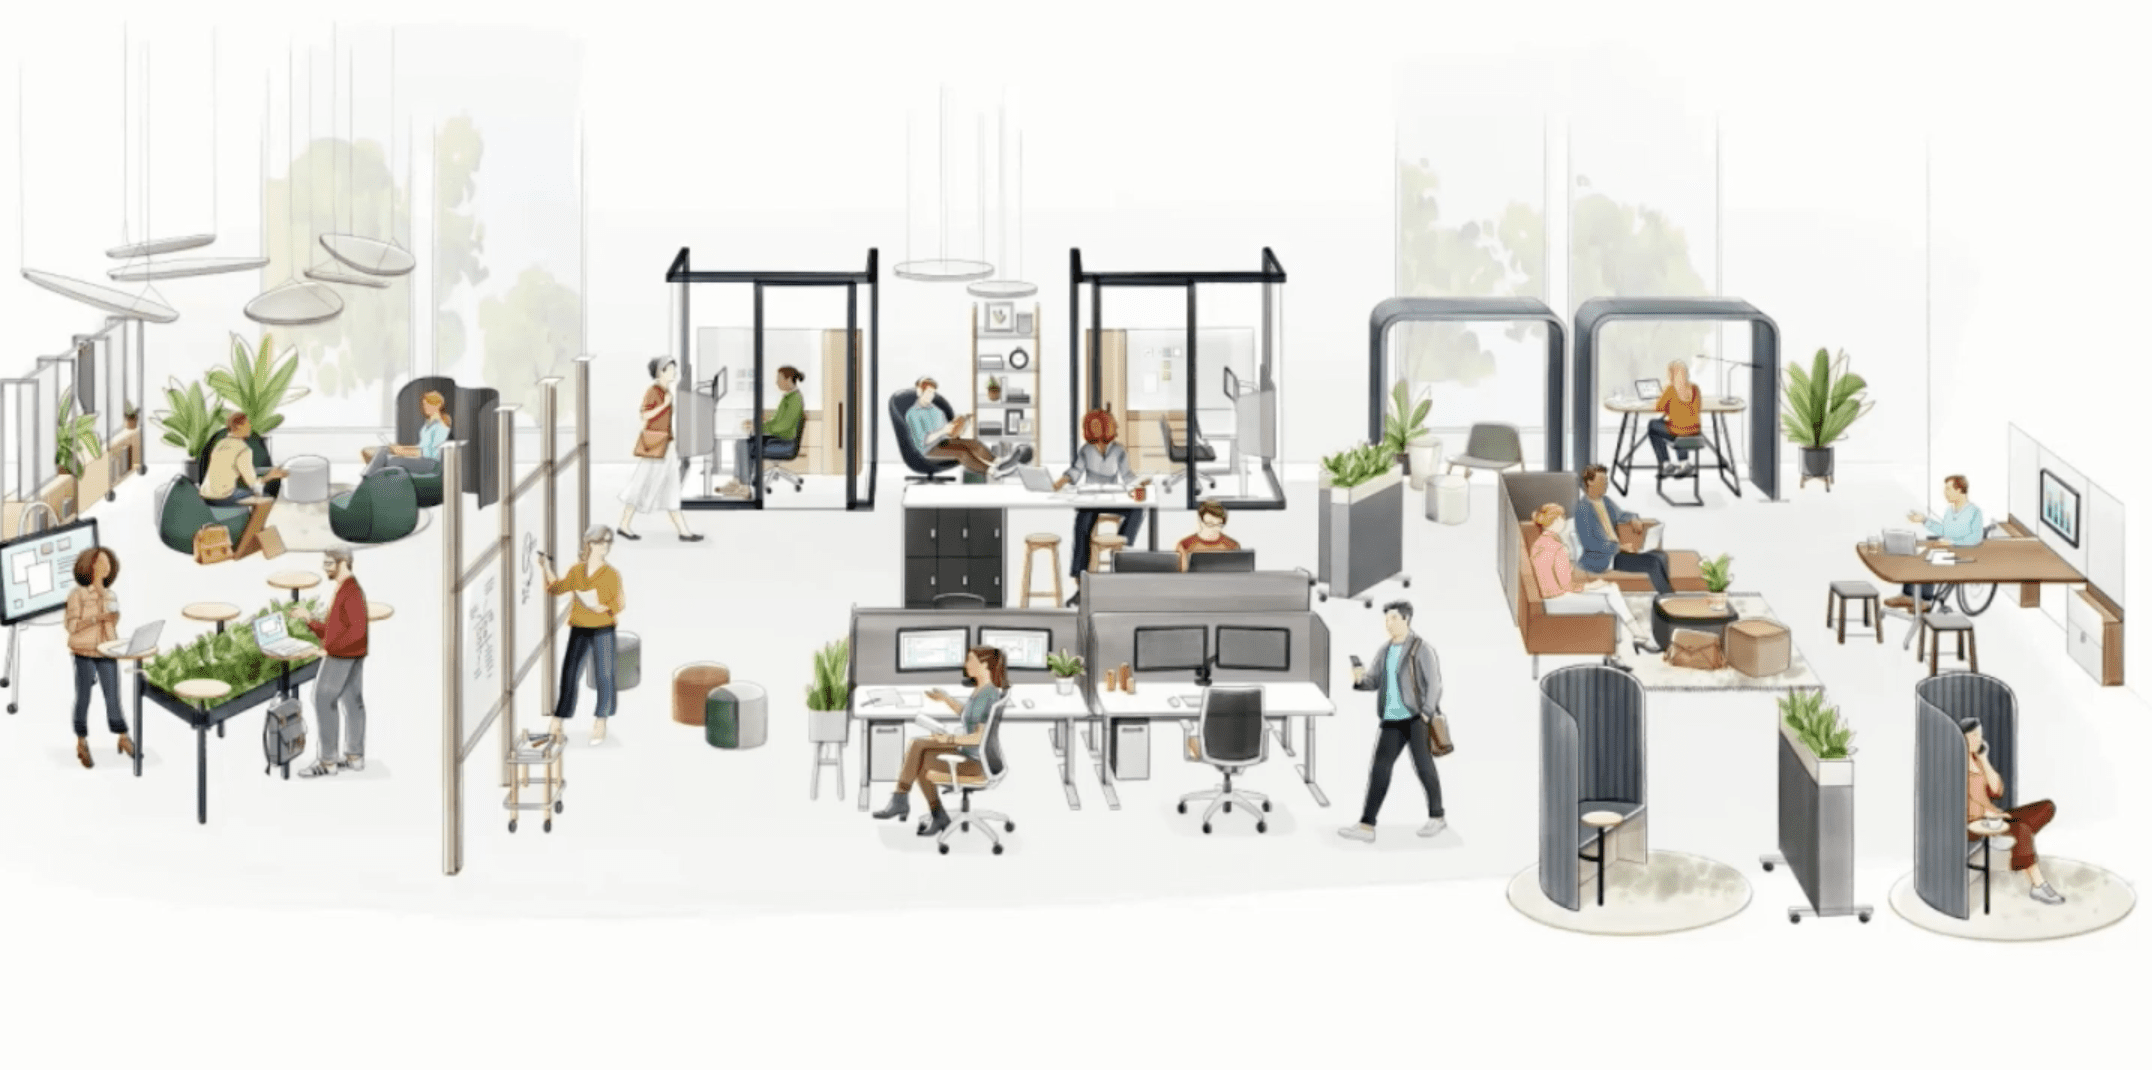 Workplace illustration provided for the Product Live: Allsteel and Corral video at NeoCon